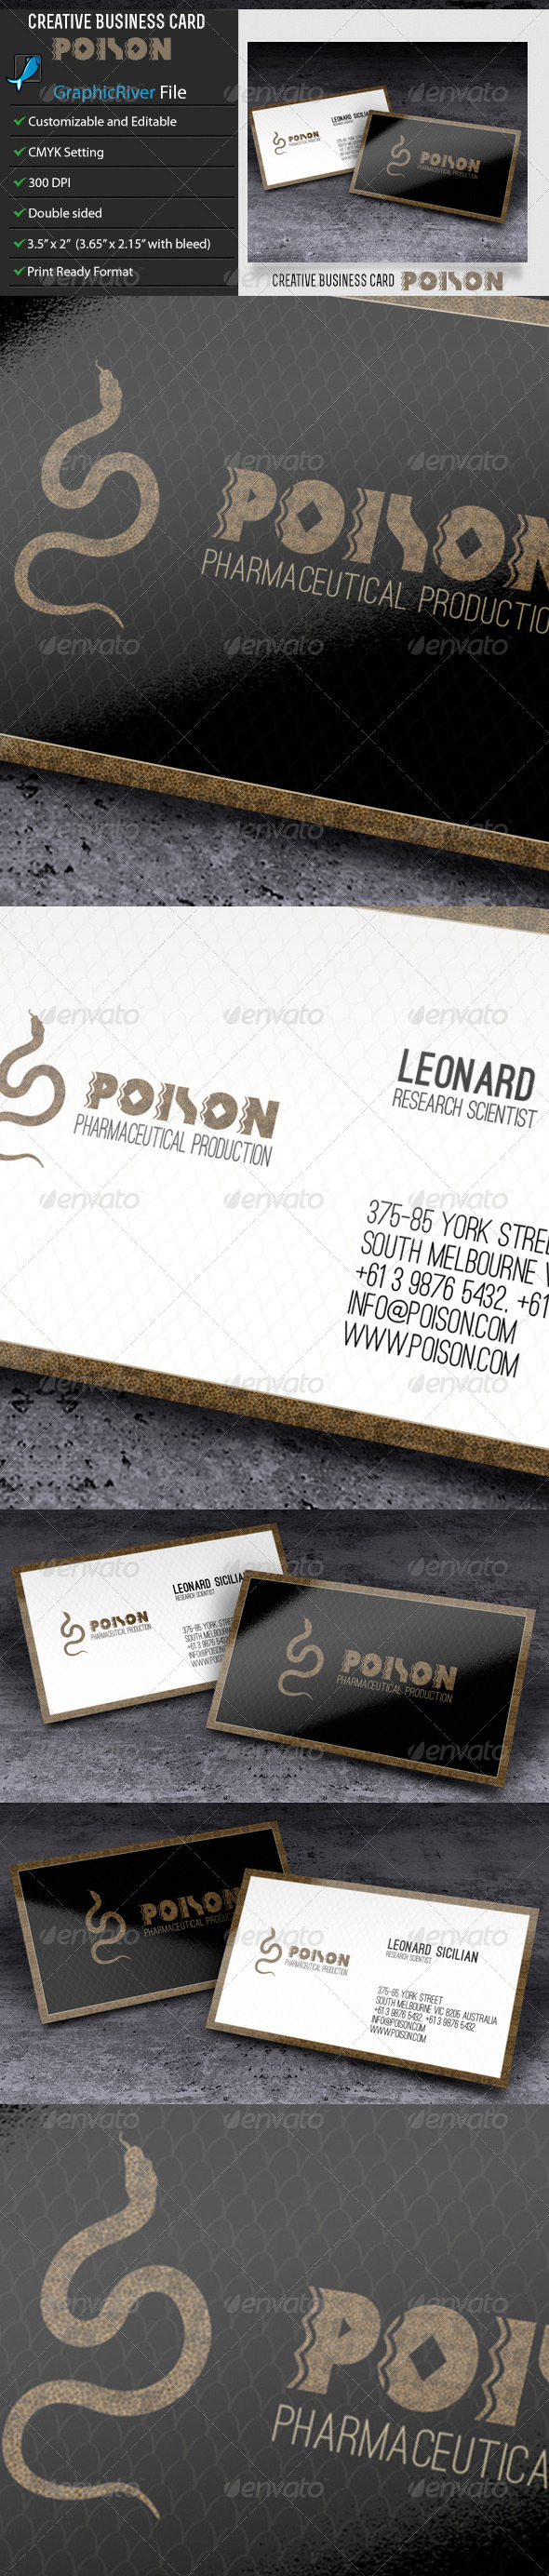 GraphicRiver Creative Business Card Poison 6578132